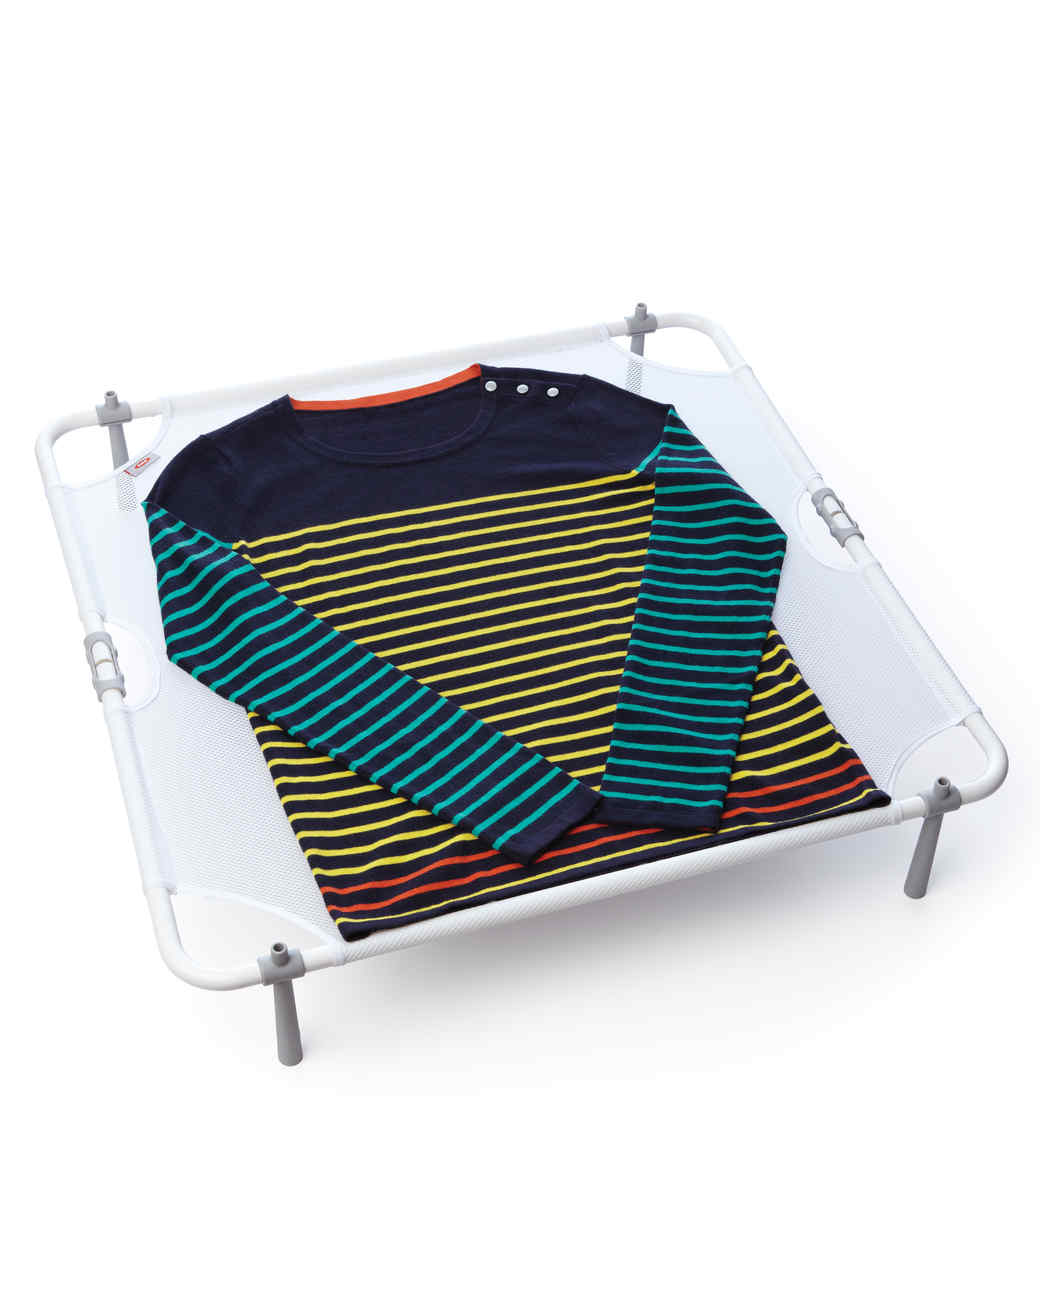 sweater-drying-rack2-049-md109483.jpg